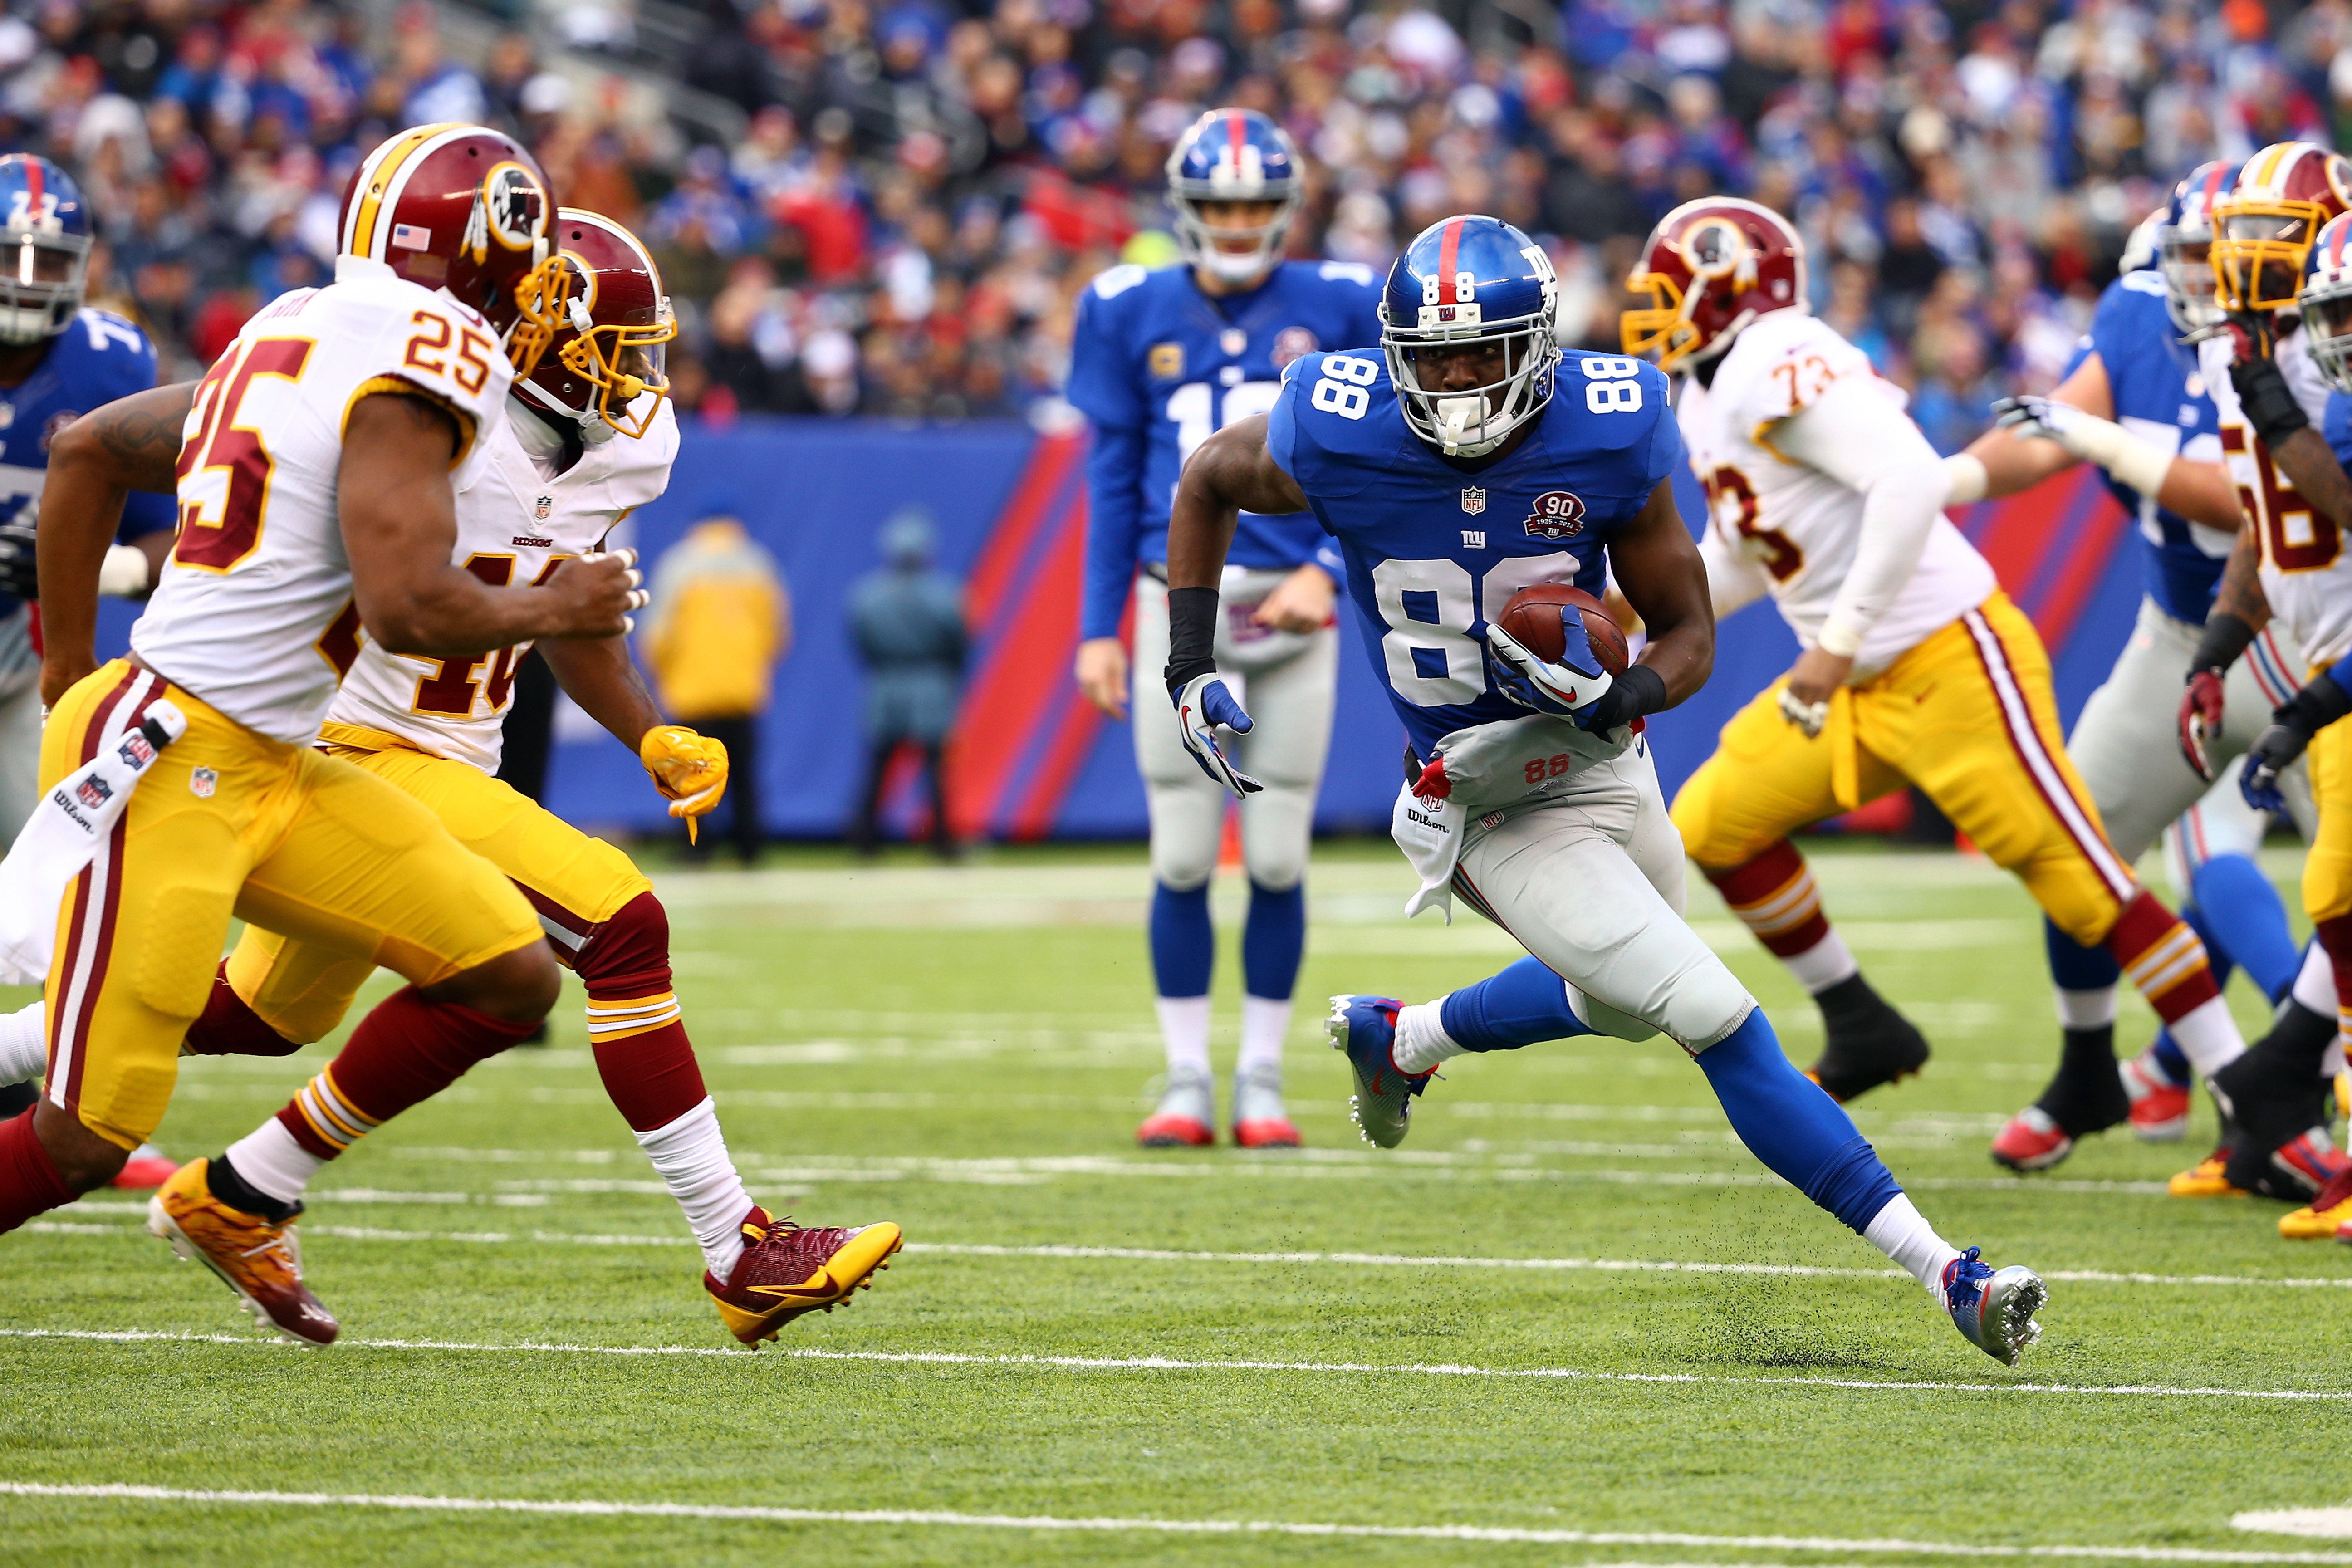 Corey Washington runs after making a catch against the Redskins on Sunday